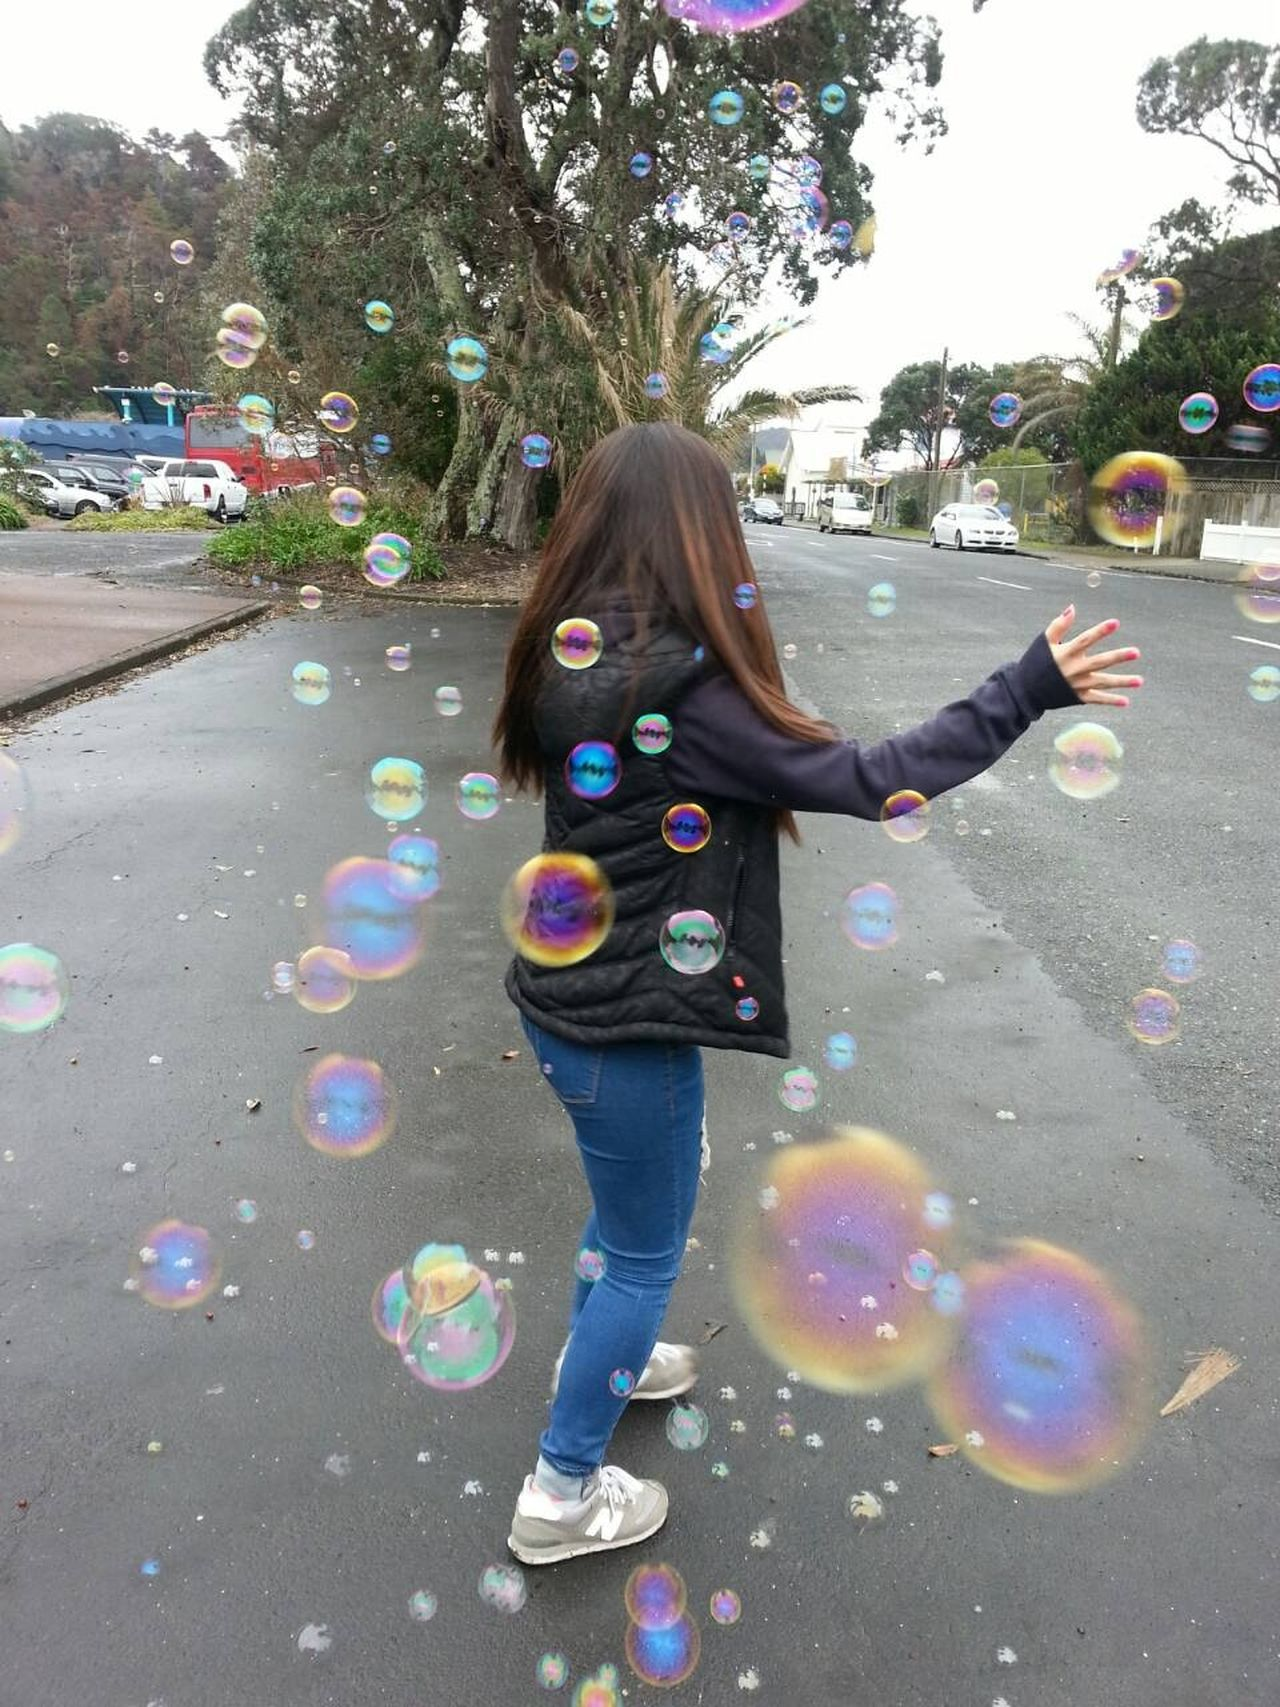 Blow Bubbles Bubbles Easy To Understand-LifeStyle/SoCal Flying Bubbles Fun Fun Time Make Bubbles Portrait Rainbow Colors Watch Out!